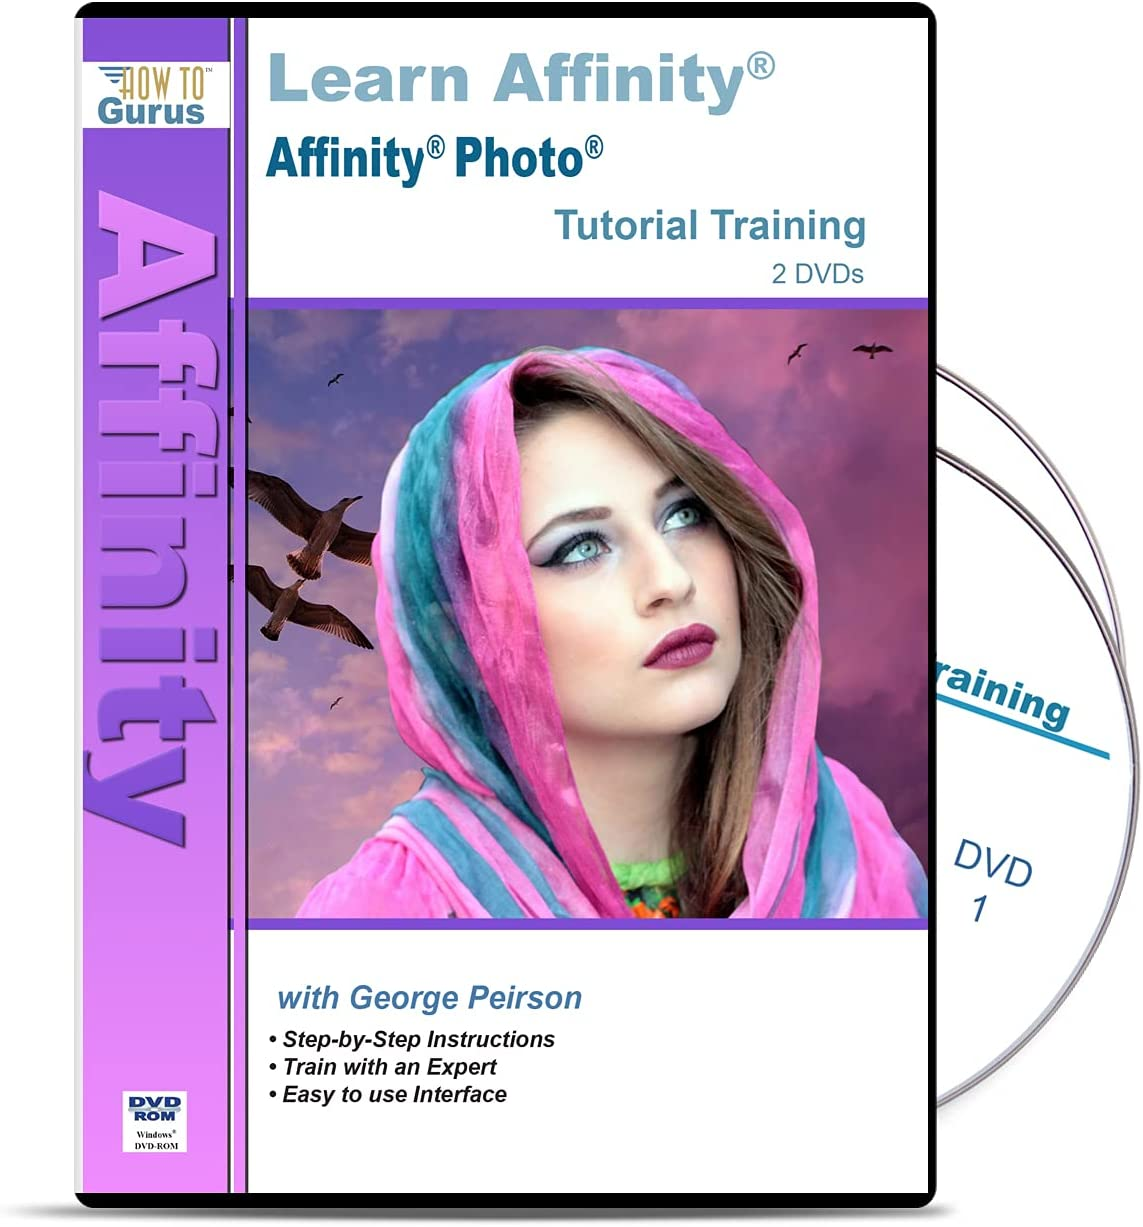 Training for Serif Affinity Photo from How 2 on To Gurus 5 Bargain San Francisco Mall sale DVDs